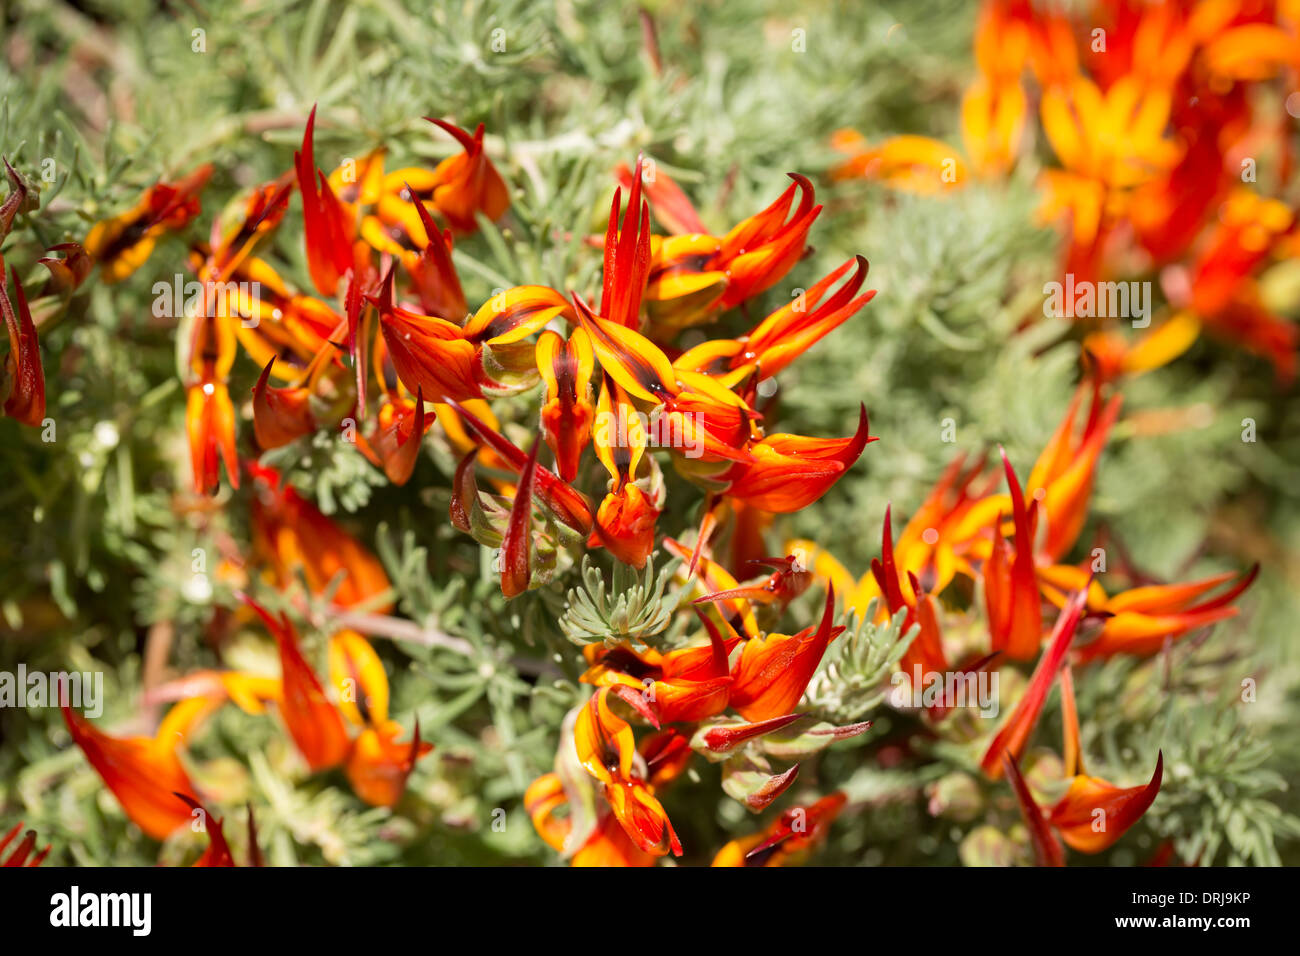 Lotus berthelotii stock photos lotus berthelotii stock images alamy red and orange lotus flowers lotus berthelotii stock image izmirmasajfo